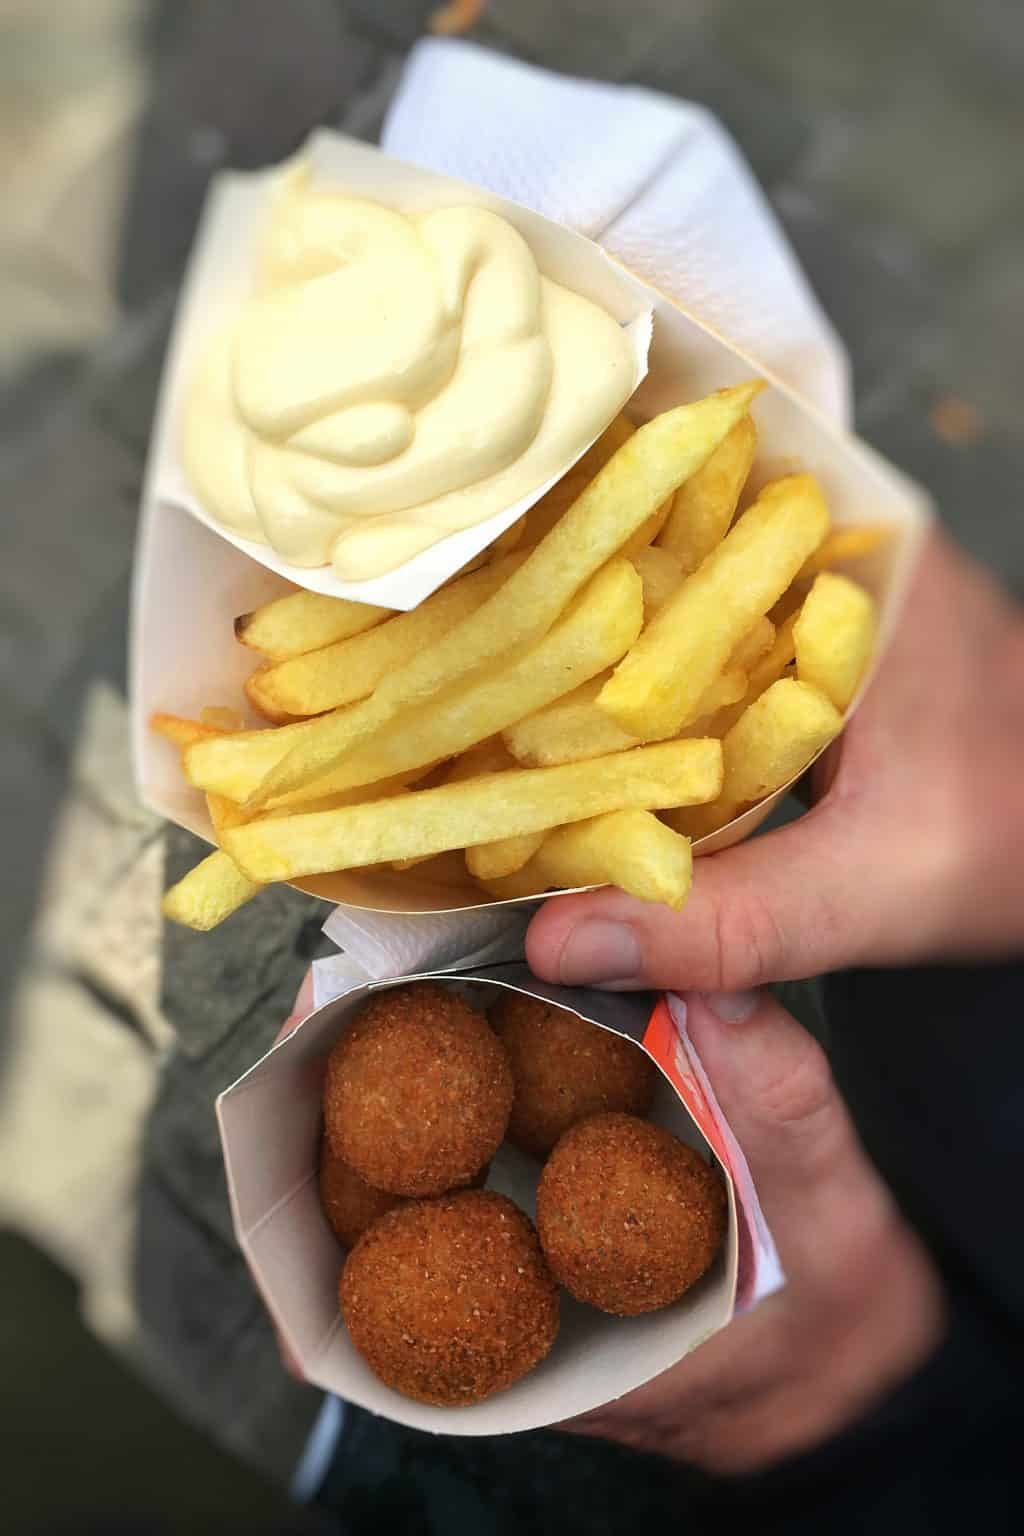 Have you visited Belgium before? Do you know what type of Belgian street food you can find around here?